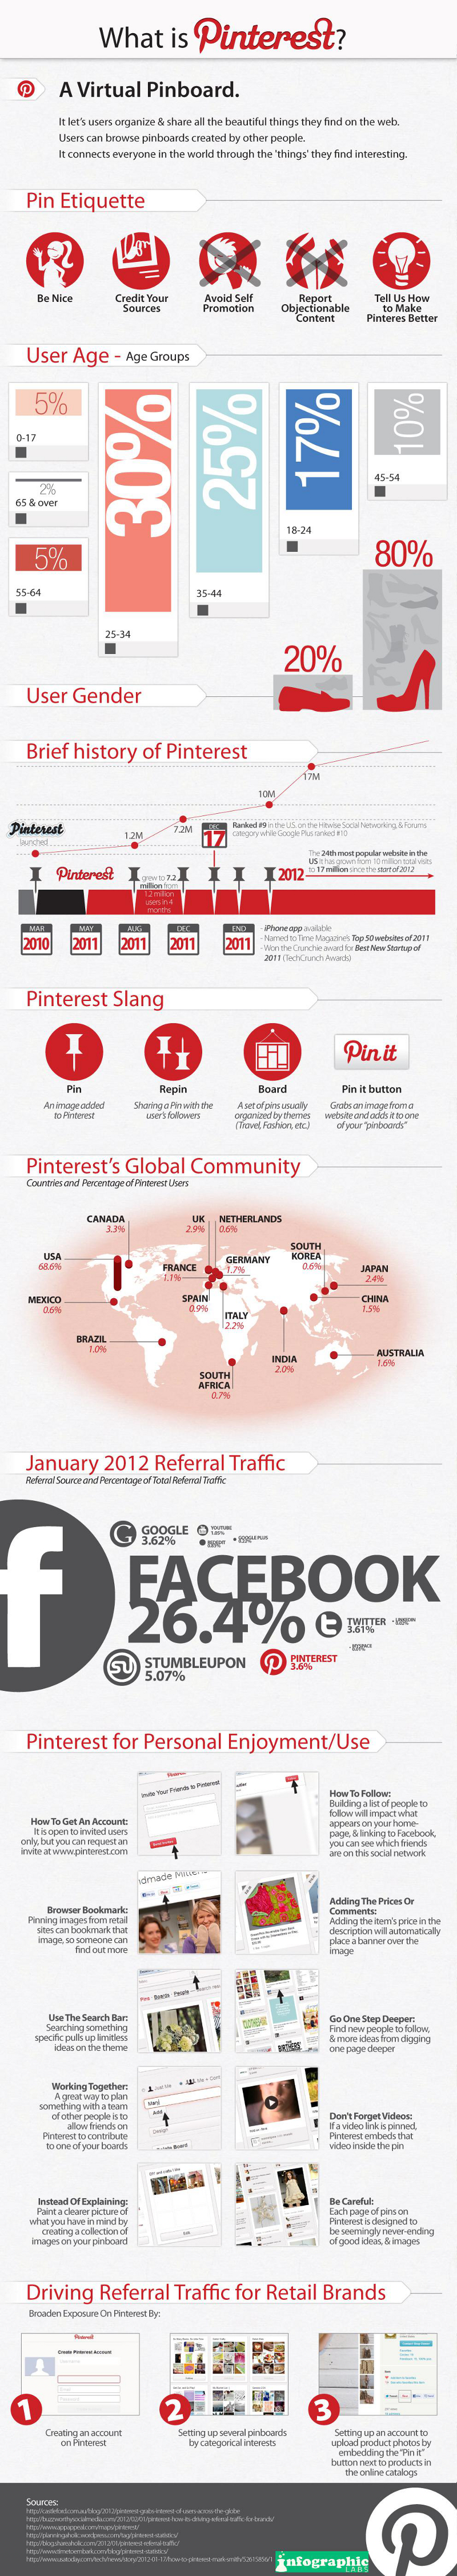 Pinterest User Age Demographics